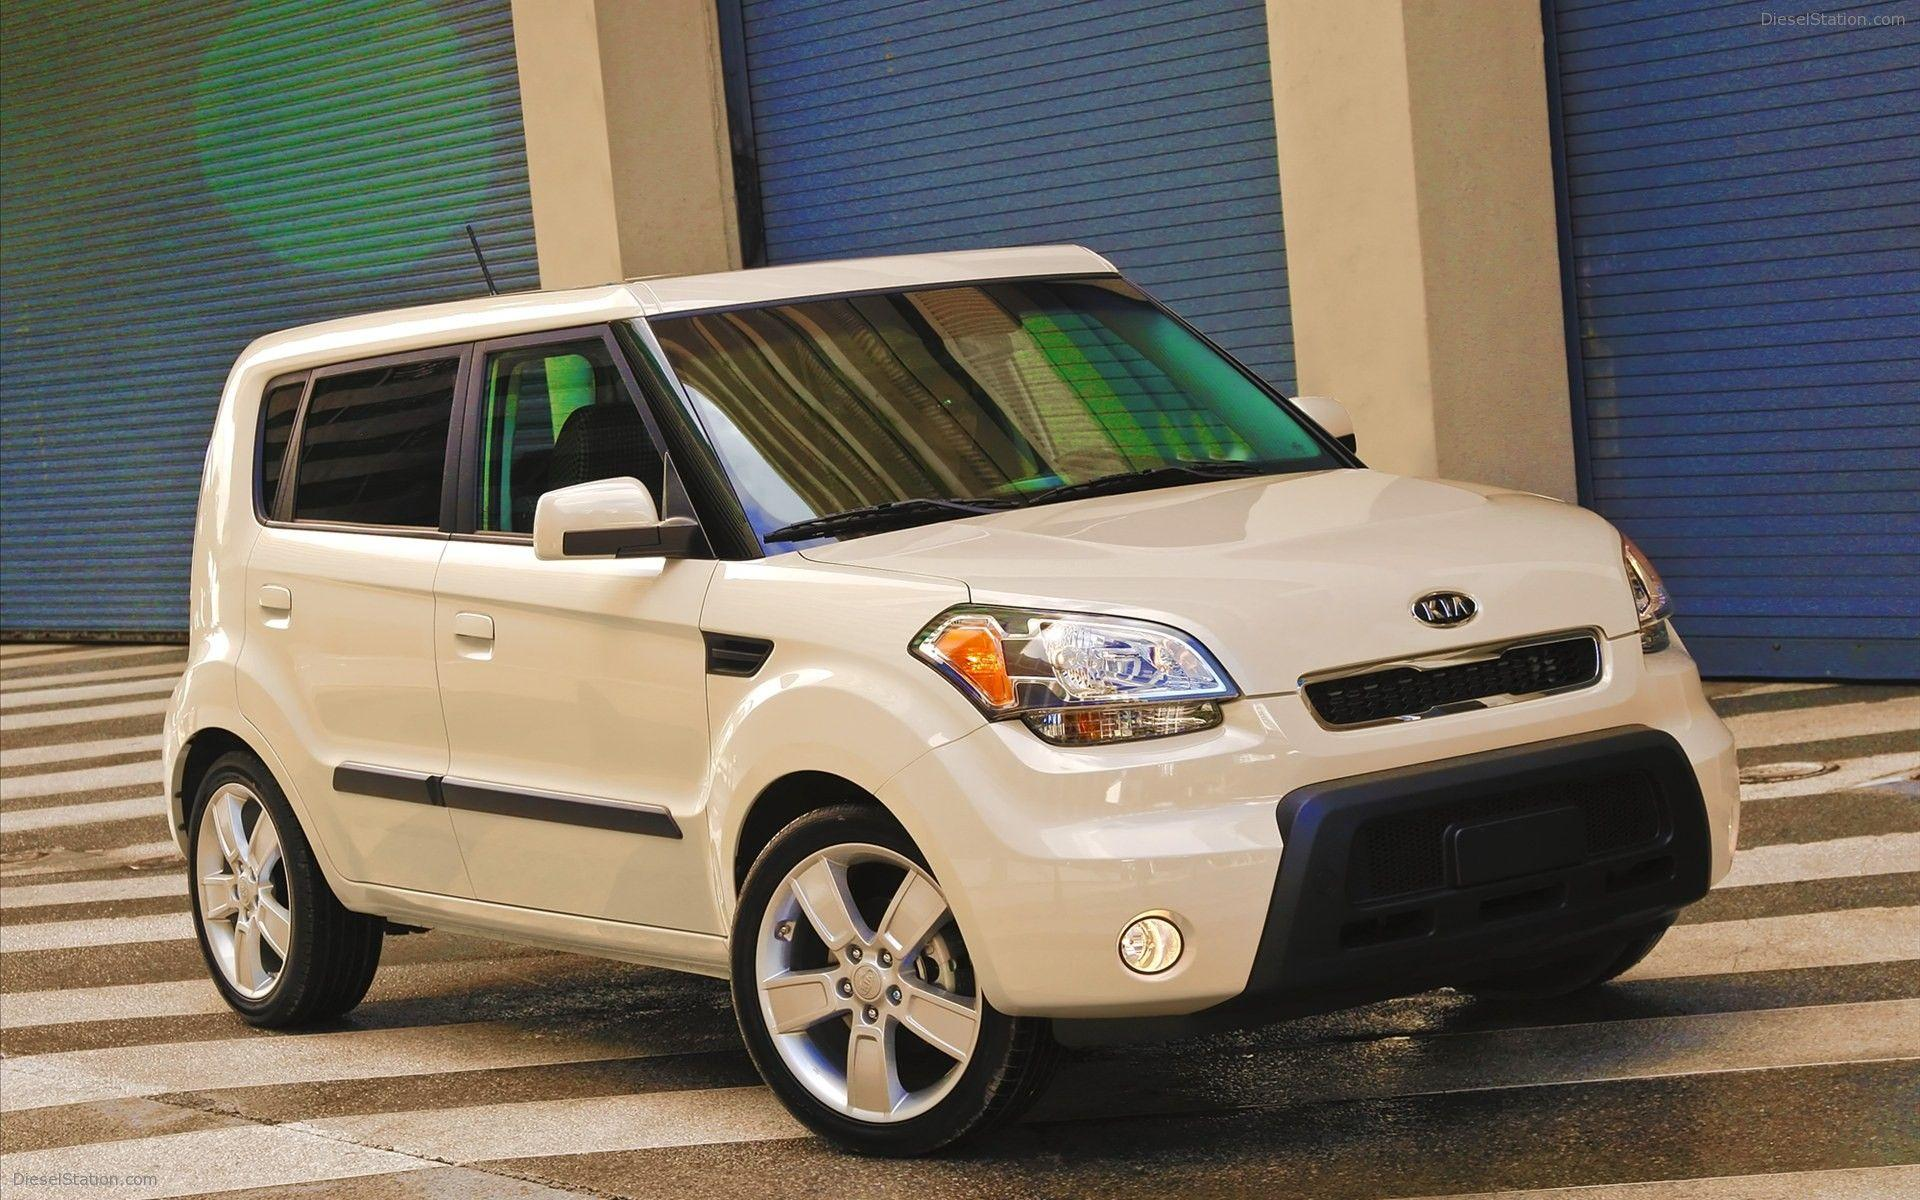 Kia Soul 2011 Widescreen Exotic Car Wallpapers of 28 : Diesel Station